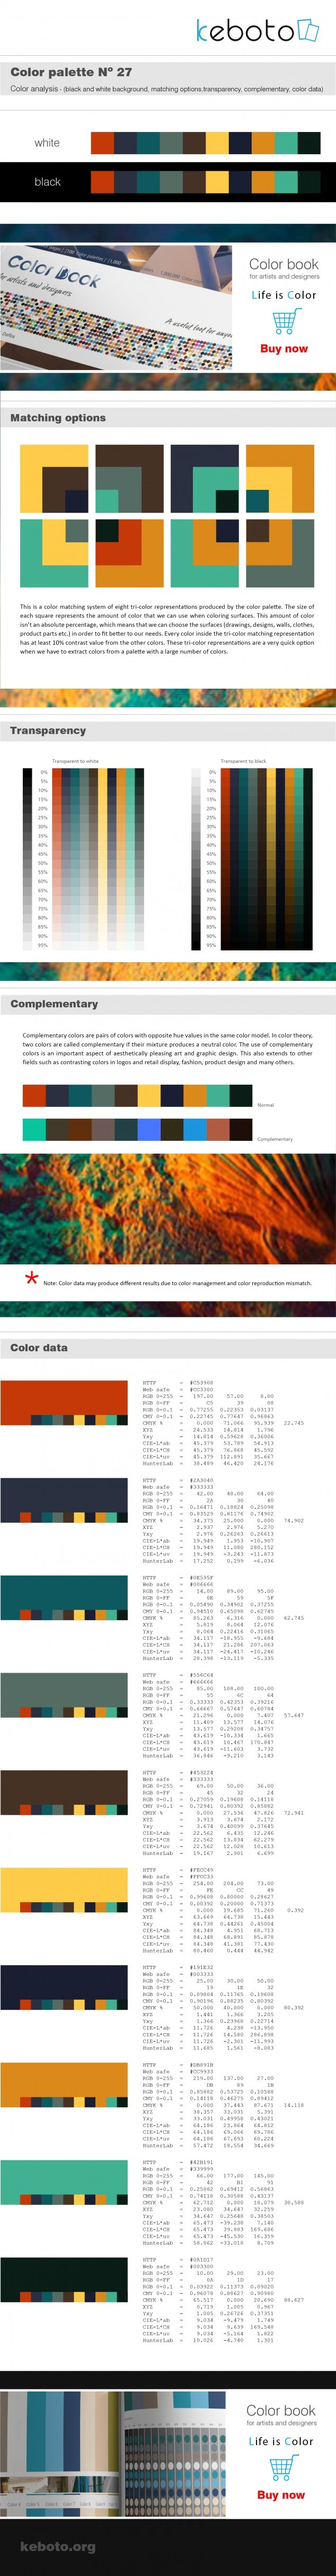 Keboto - Color Palette Νο27